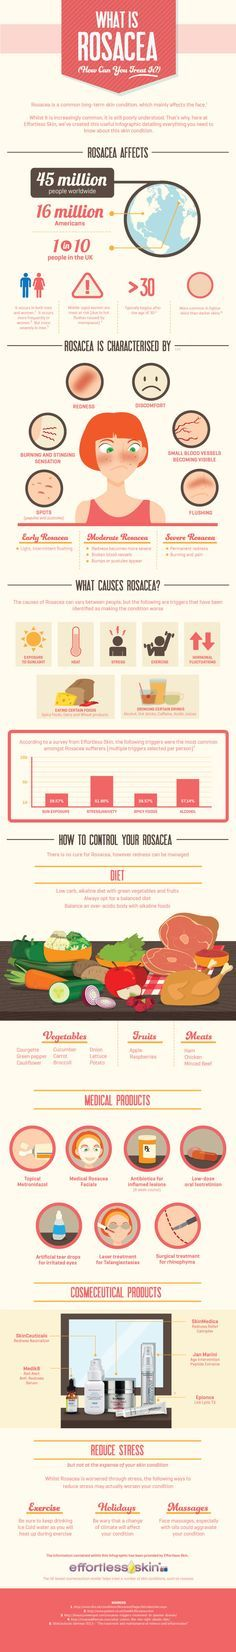 Rosacea is an increasingly common, but relatively unknown skin condition. This Infographic gives you all the facts as well as tips to treat Rosacea.